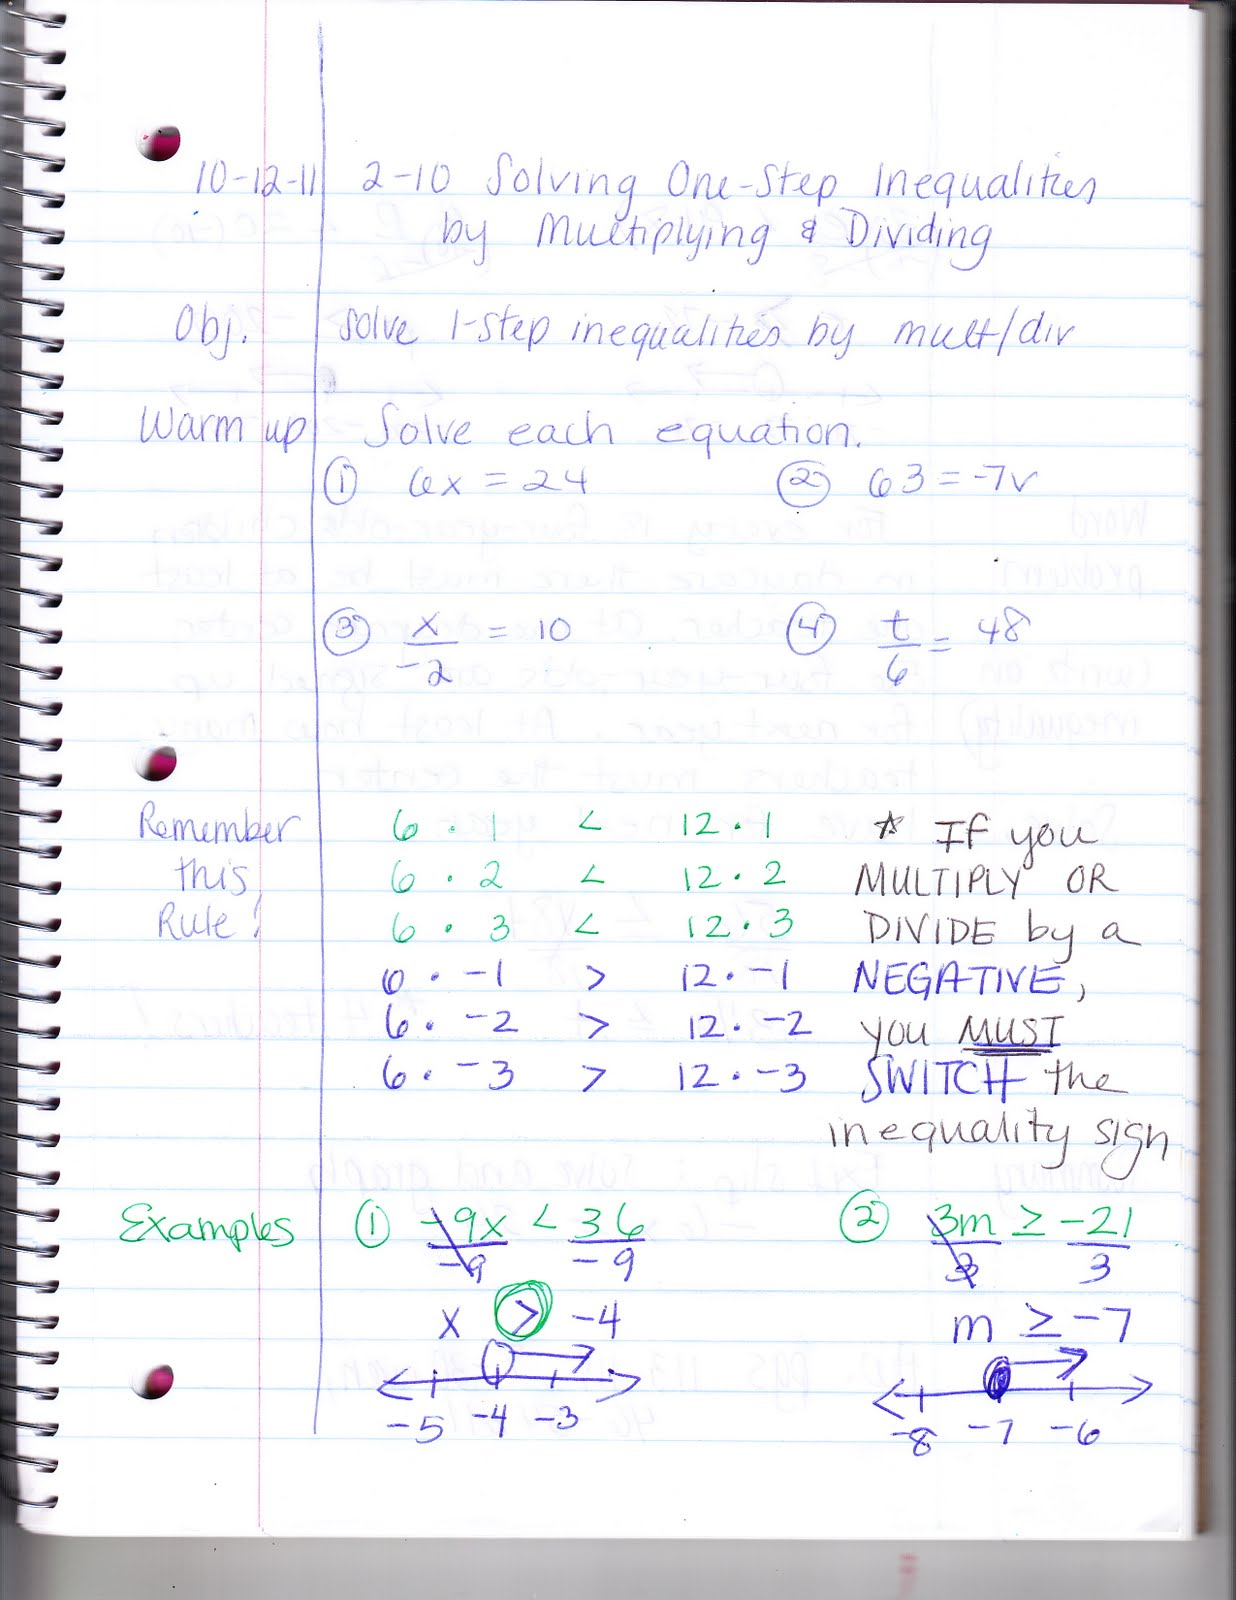 Ms Jean S Classroom Blog 2 10 Solving 1 Step Inequalities By Multiplying Or Dividing